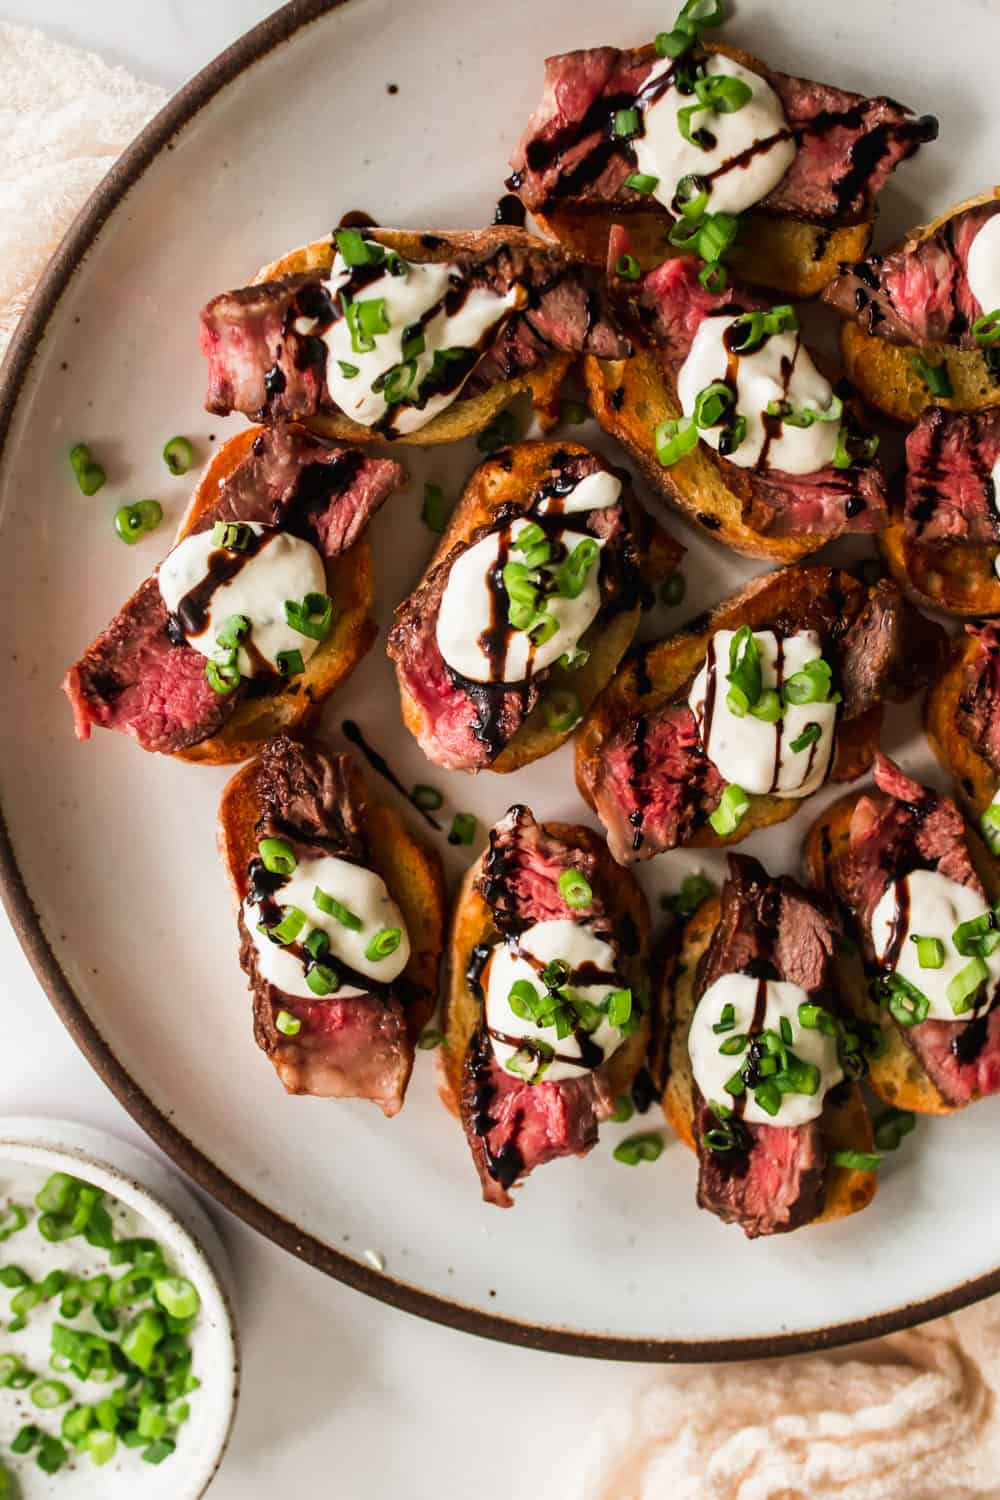 Steak and cream sauce on top of crostini on a white plate